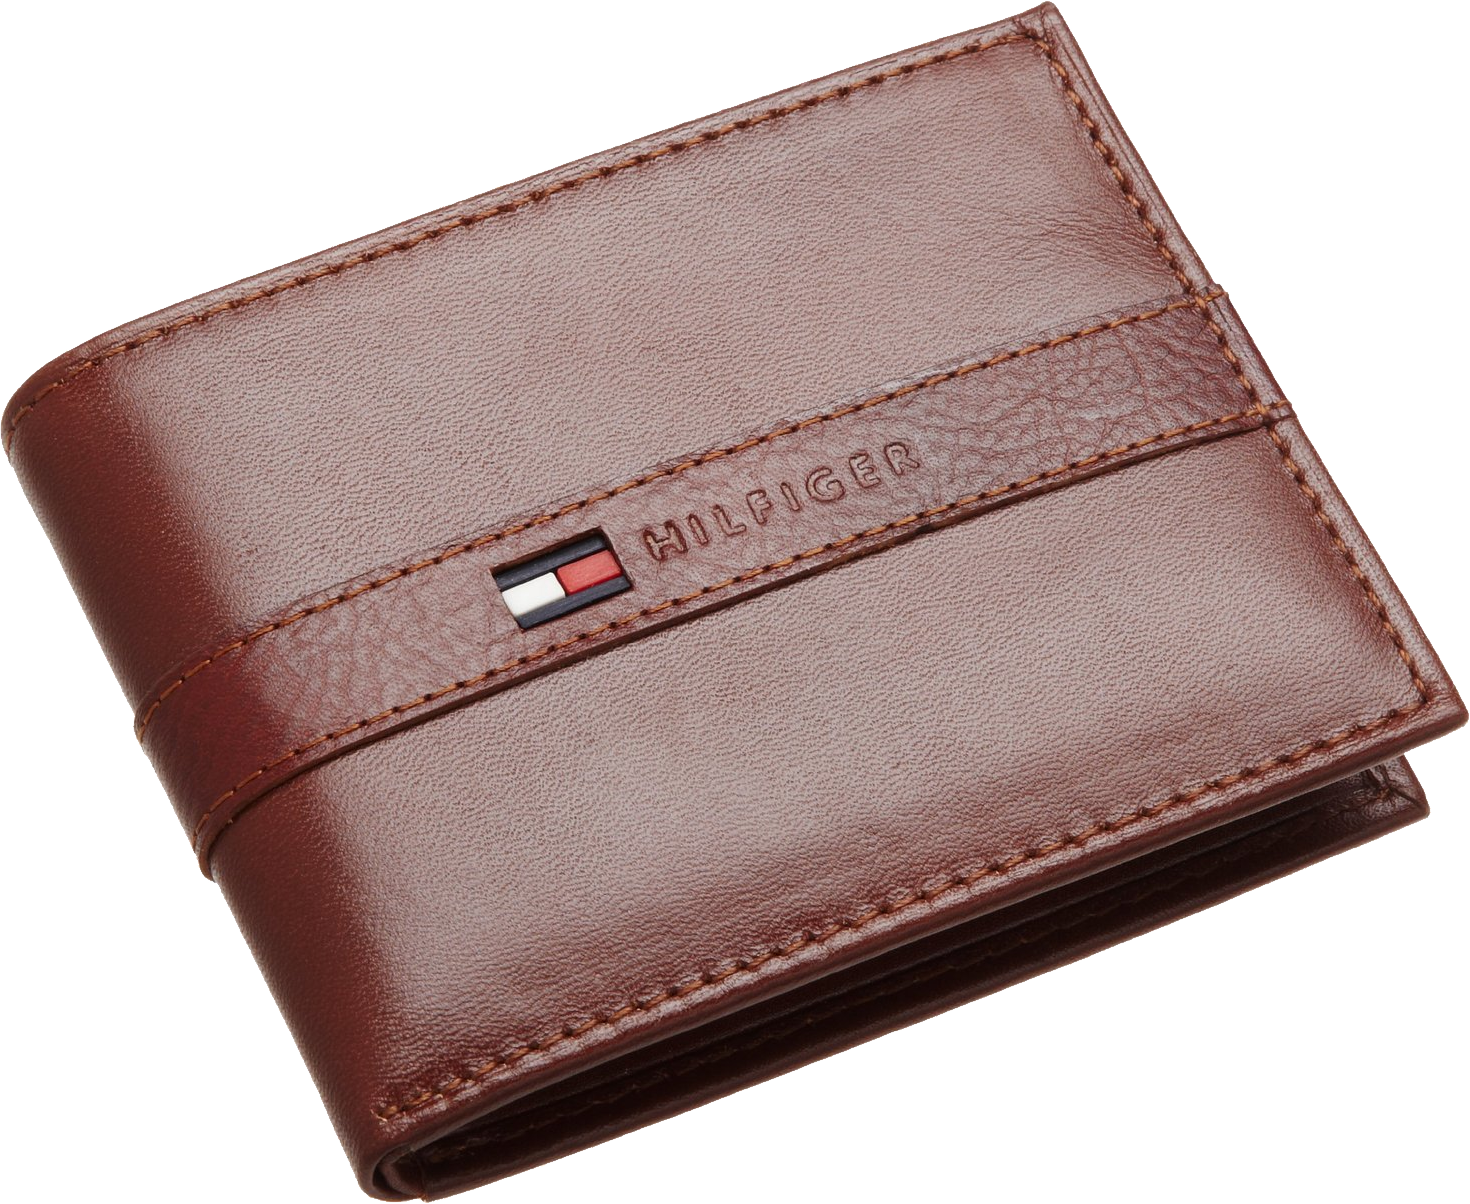 Brown leather wallet PNG image